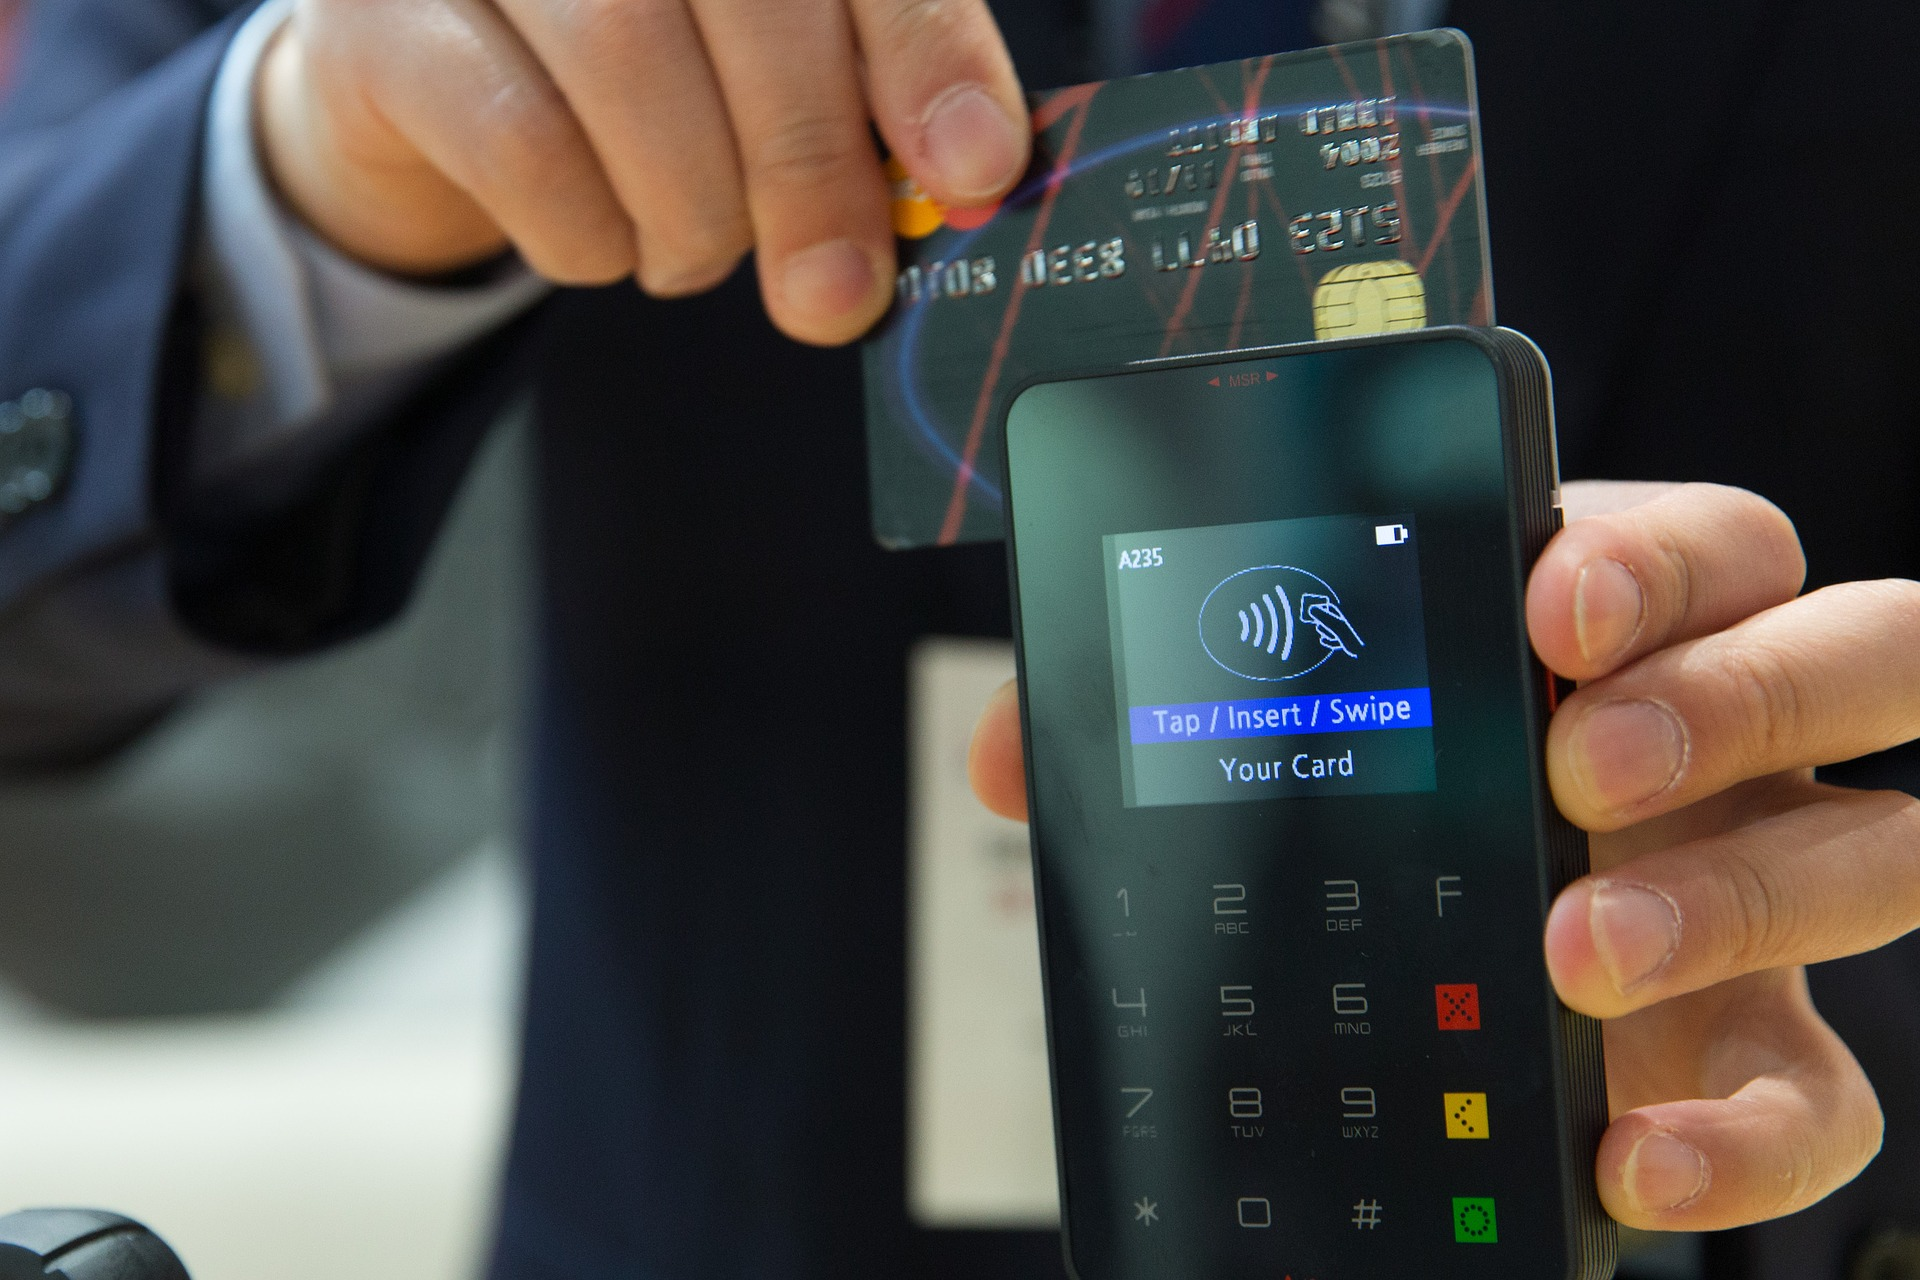 4 Benefits to owning a pinless debit card